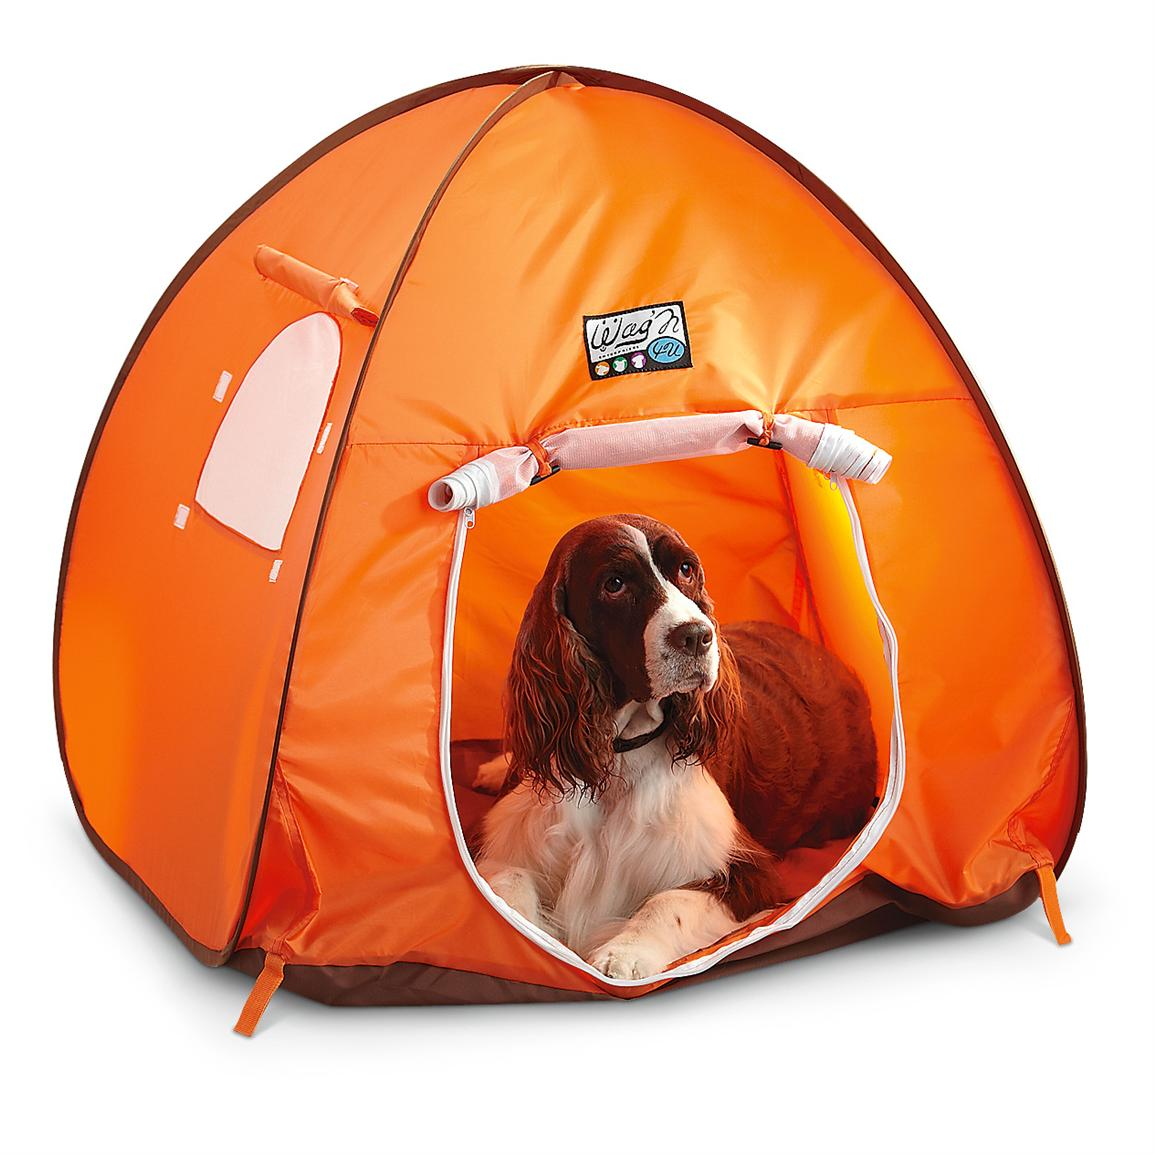 Wagu0027N Crateu0027N Tent® Portable Pet Tent  sc 1 st  Sportsmanu0027s Guide & Wagu0027N Crateu0027N Tent® Portable Pet Tent - 211310 Kennels u0026 Beds at ...